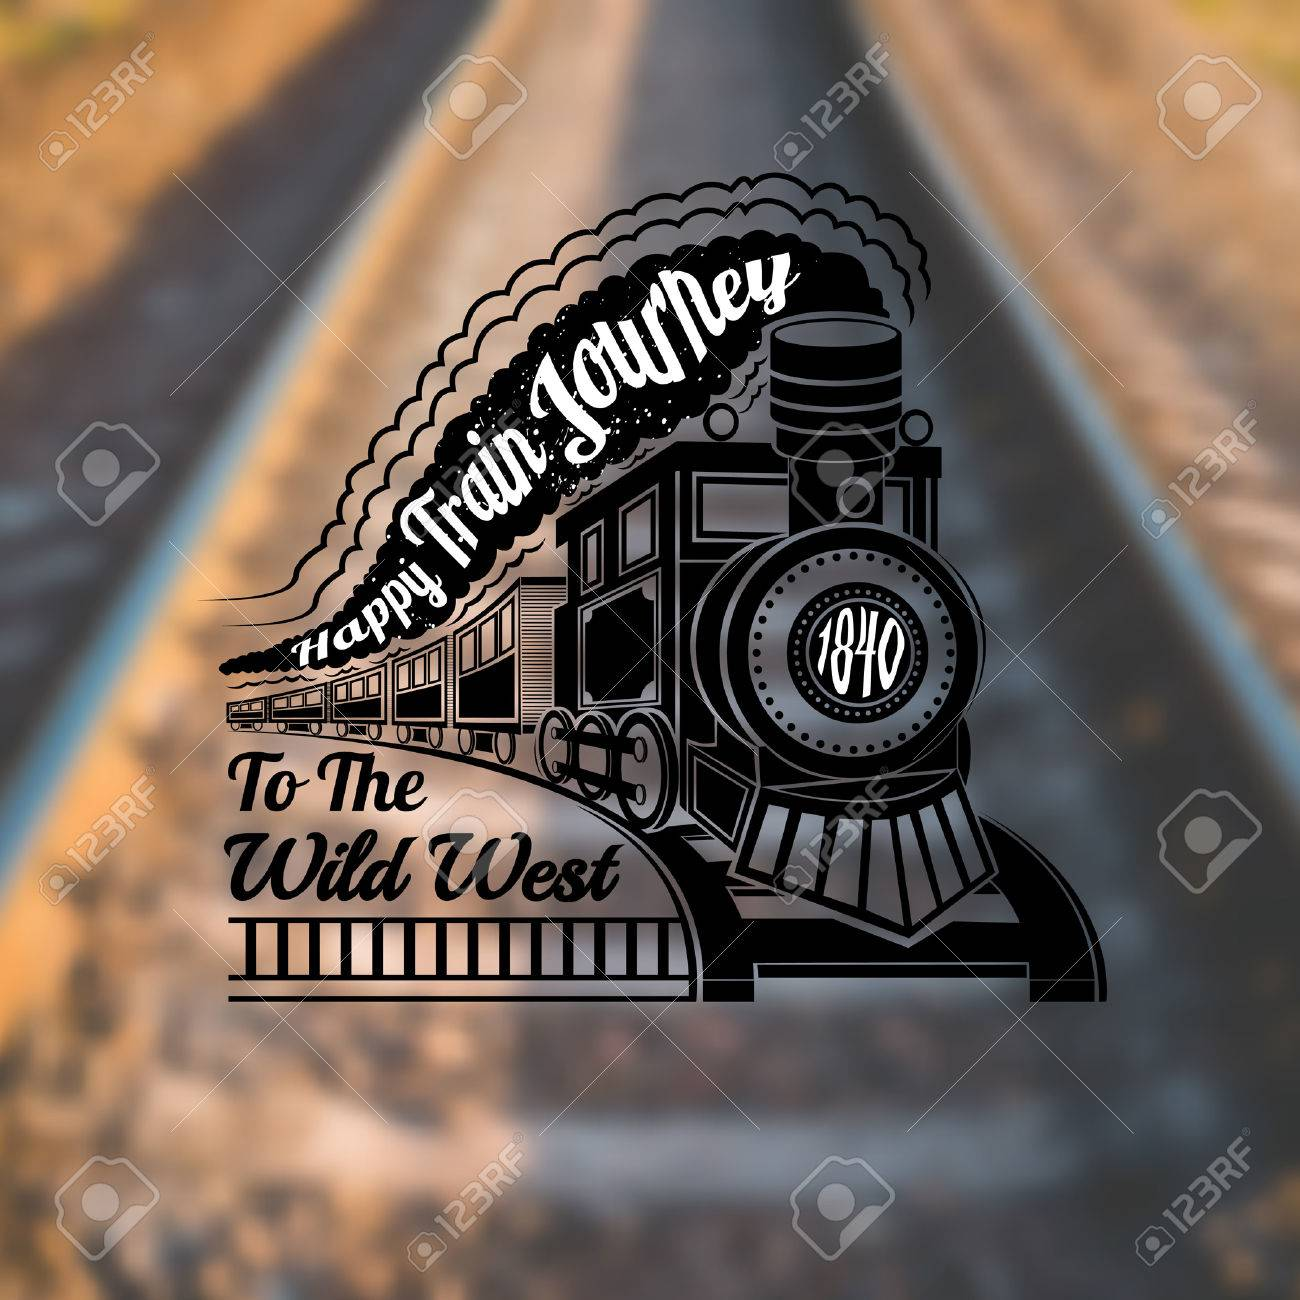 train background with old locomotive with wagons and text happy train journey in smoke label on rails blur photo - 37117229